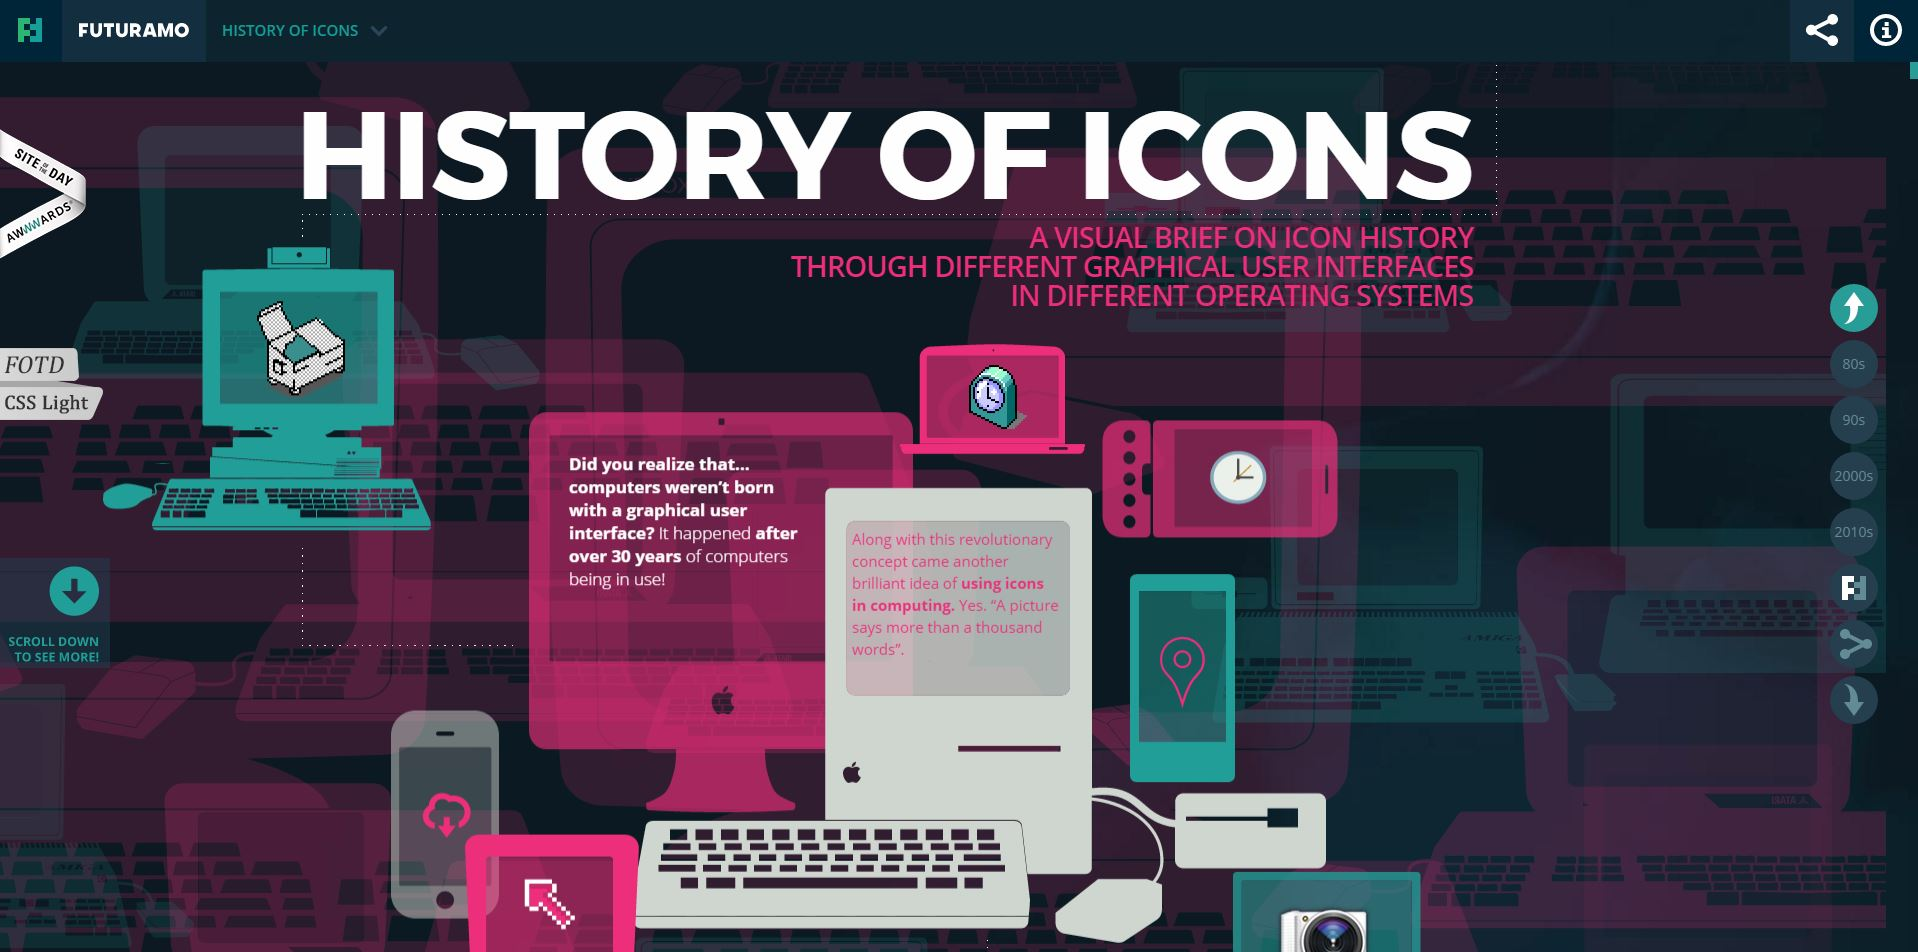 The History of Icons